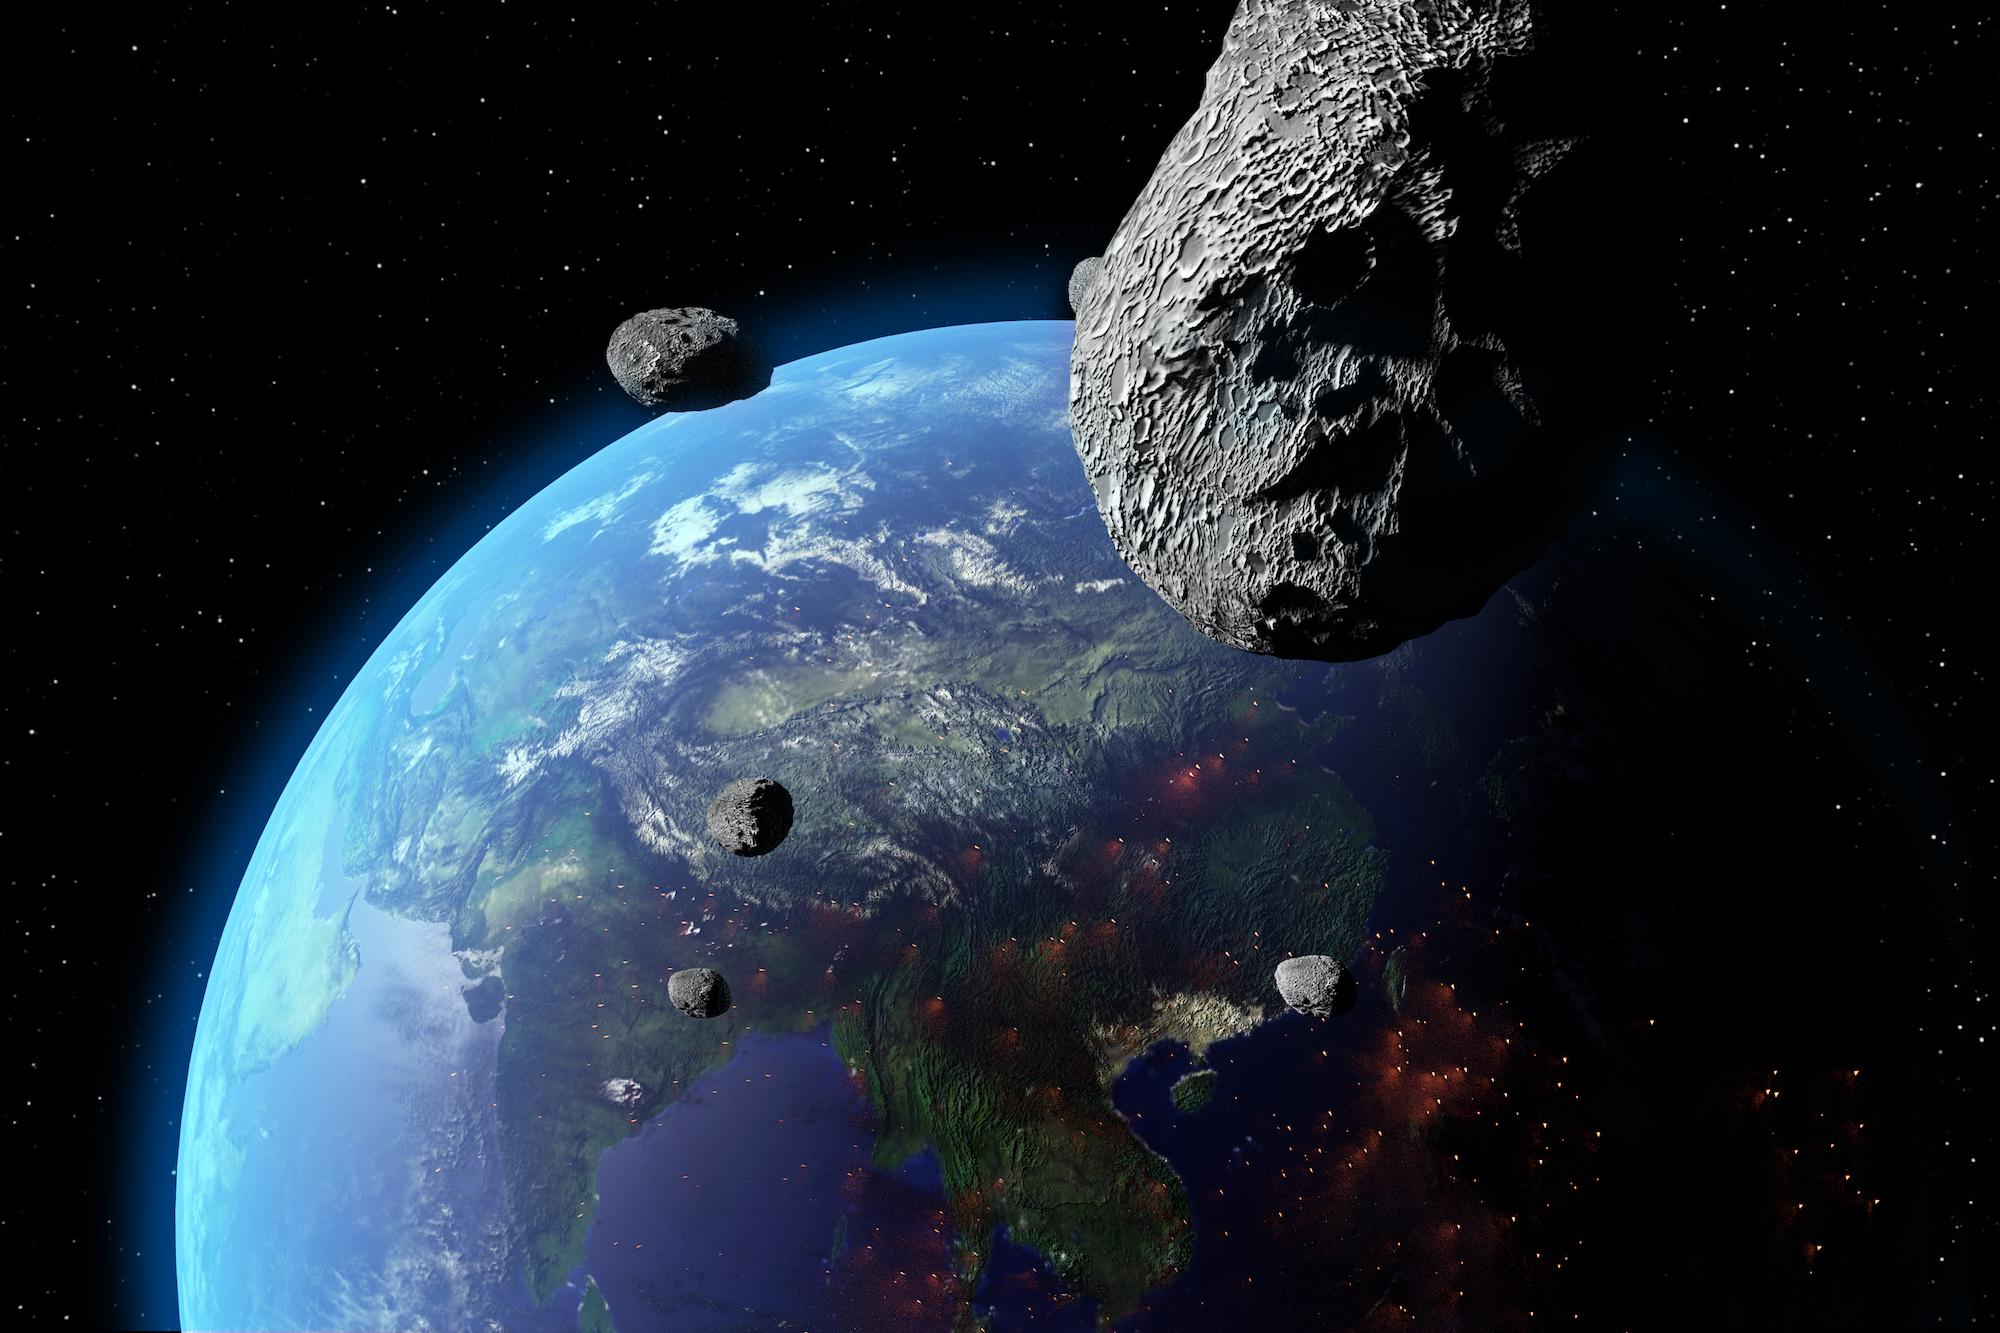 asteroid or comet weird blue space rock phaethon gets a - HD2000×1333